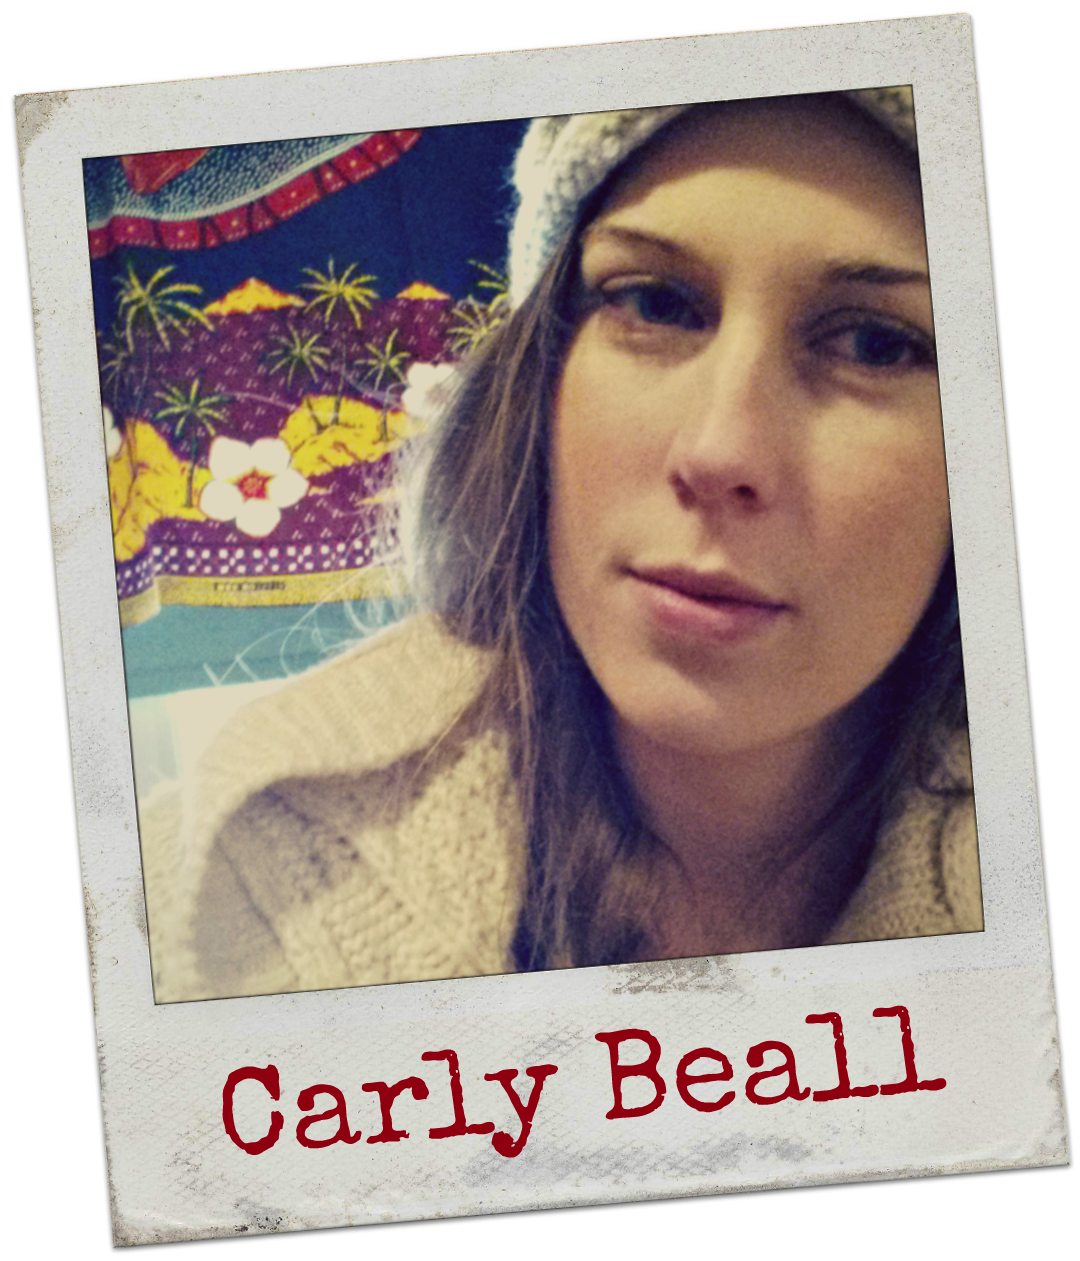 From Carly, With Love